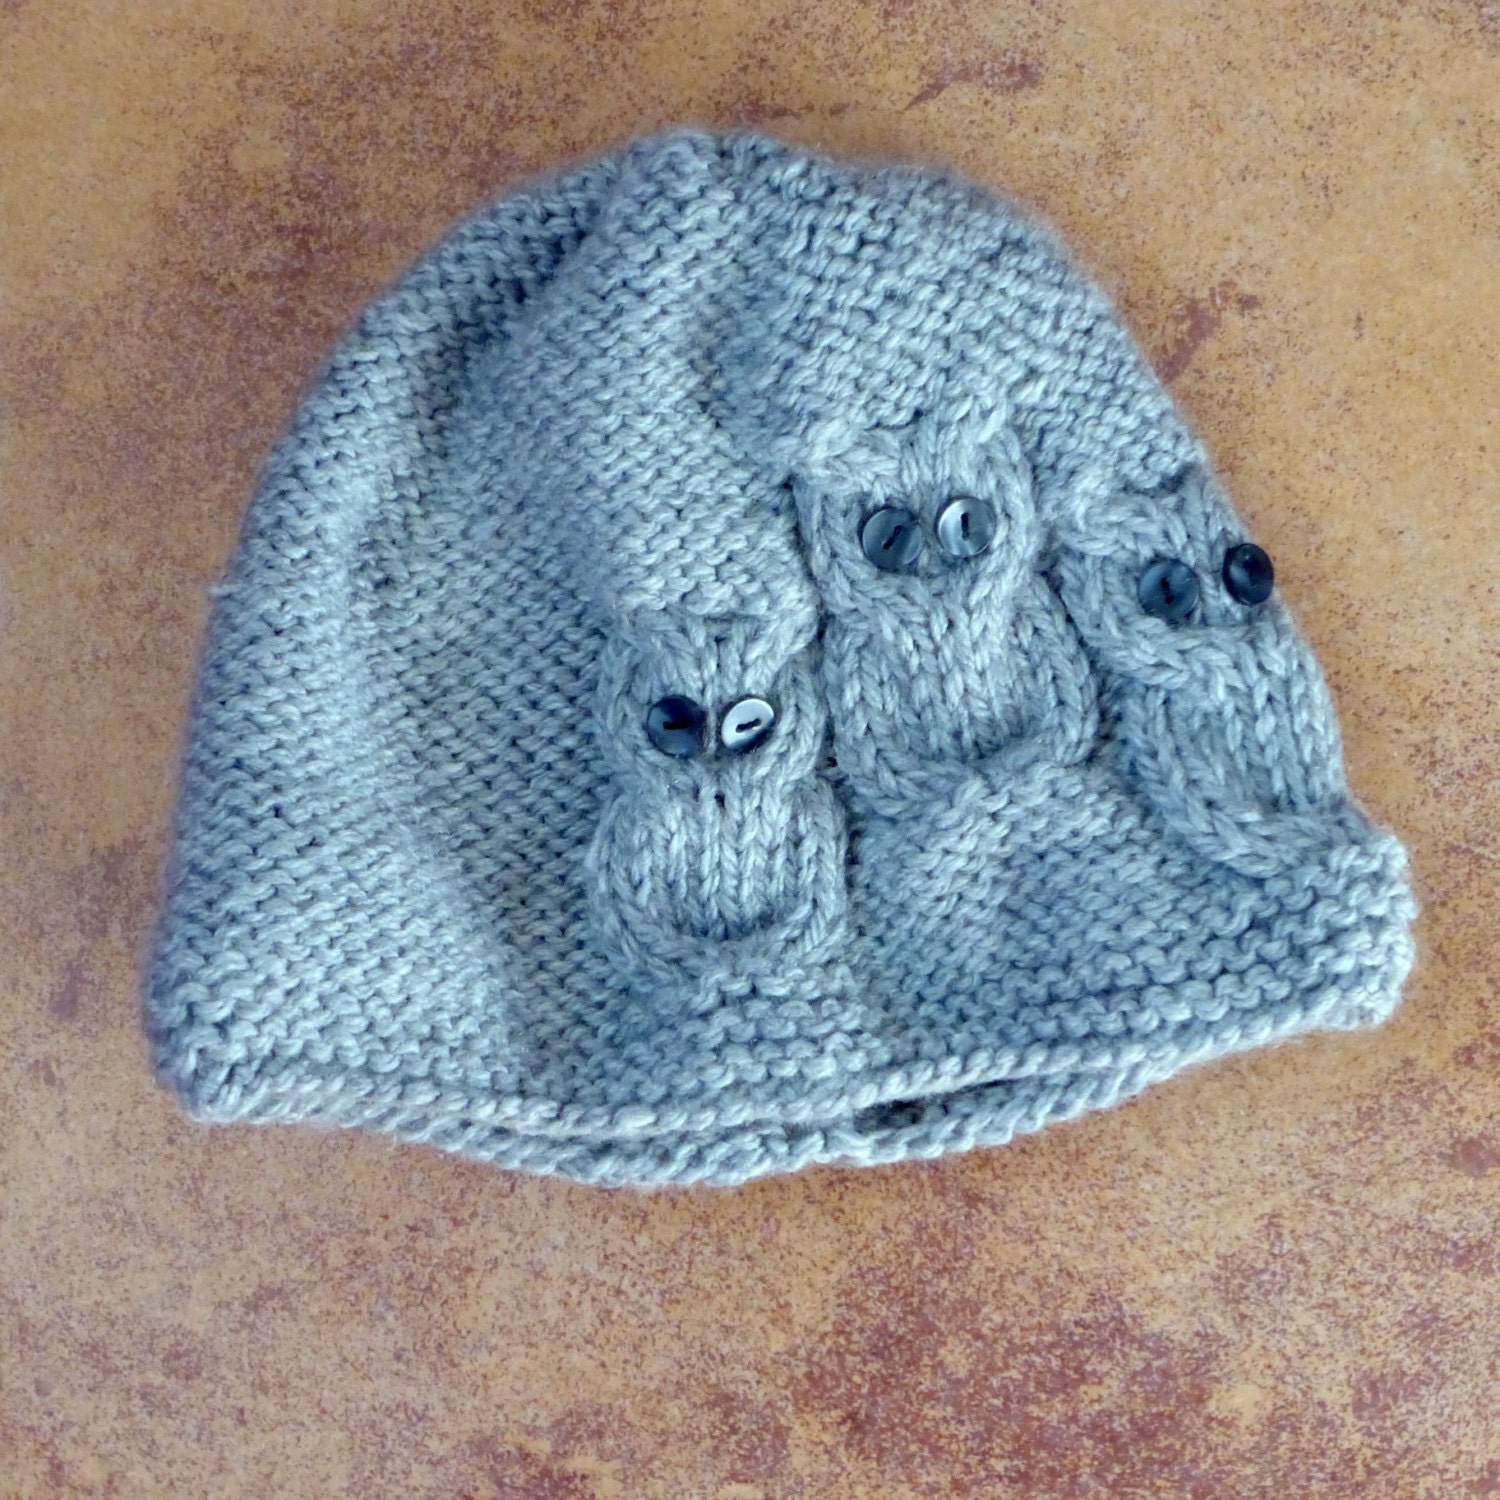 Knitting Cowl With Circular Needles : Two awesome knitting patterns owls hat and cowl for